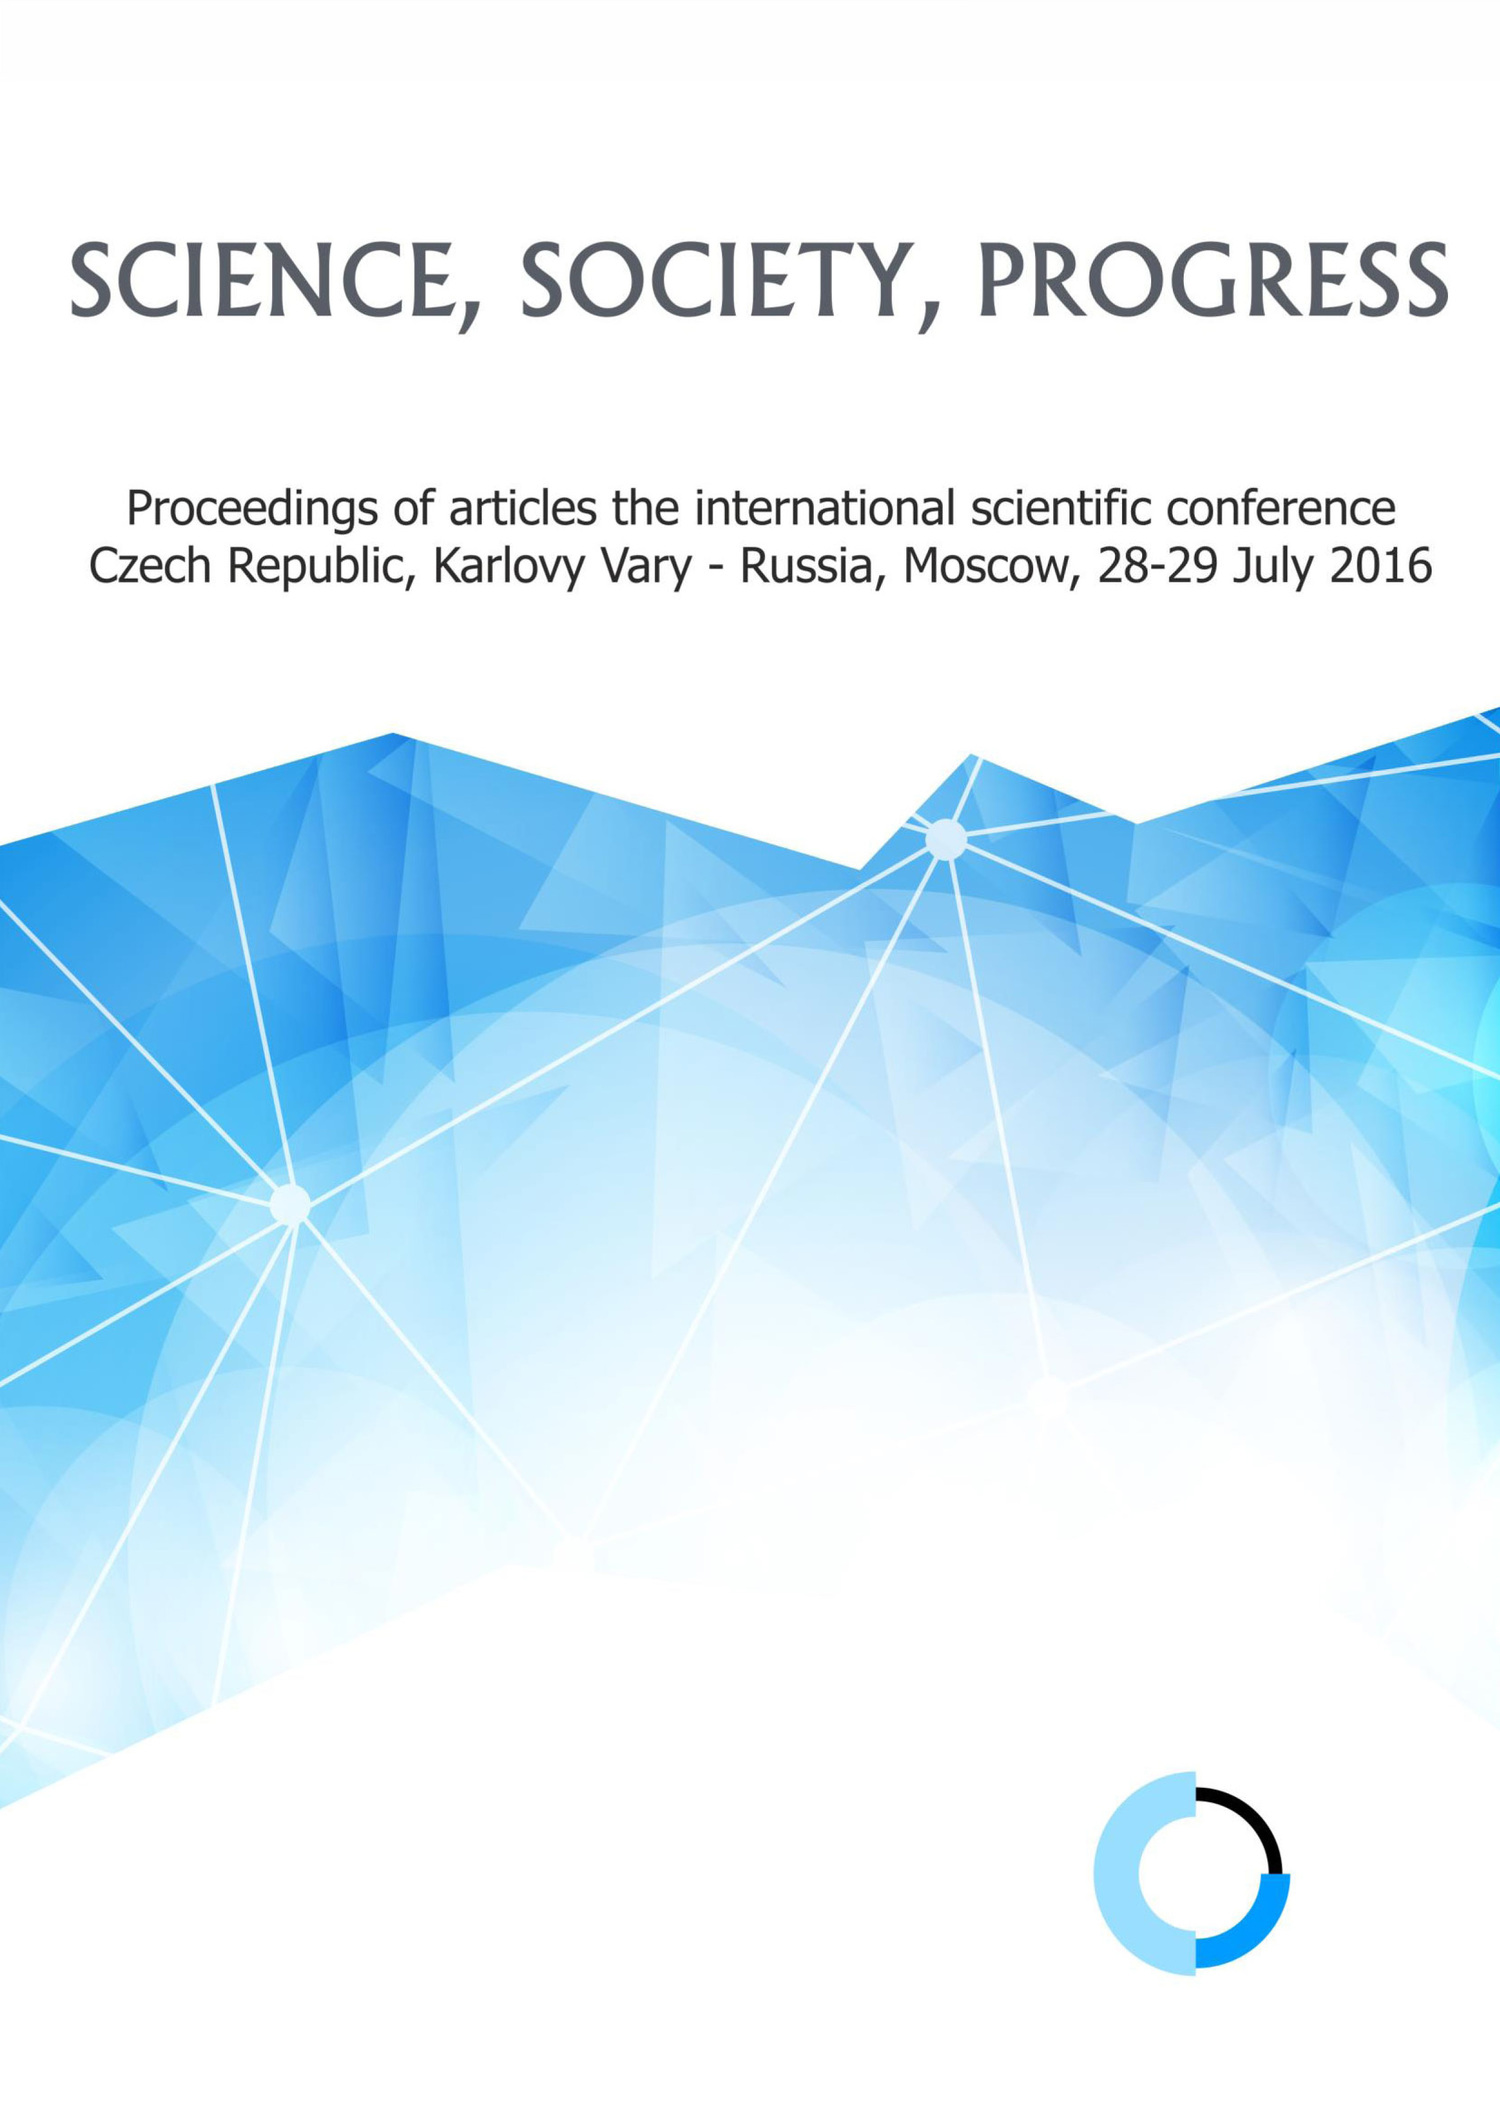 Сборник статей Science, society, progress. Proceedings of articles the international scientific conference. Czech Republic, Karlovy Vary – Russia, Moscow, 28-29 July 2016 poland czech republic